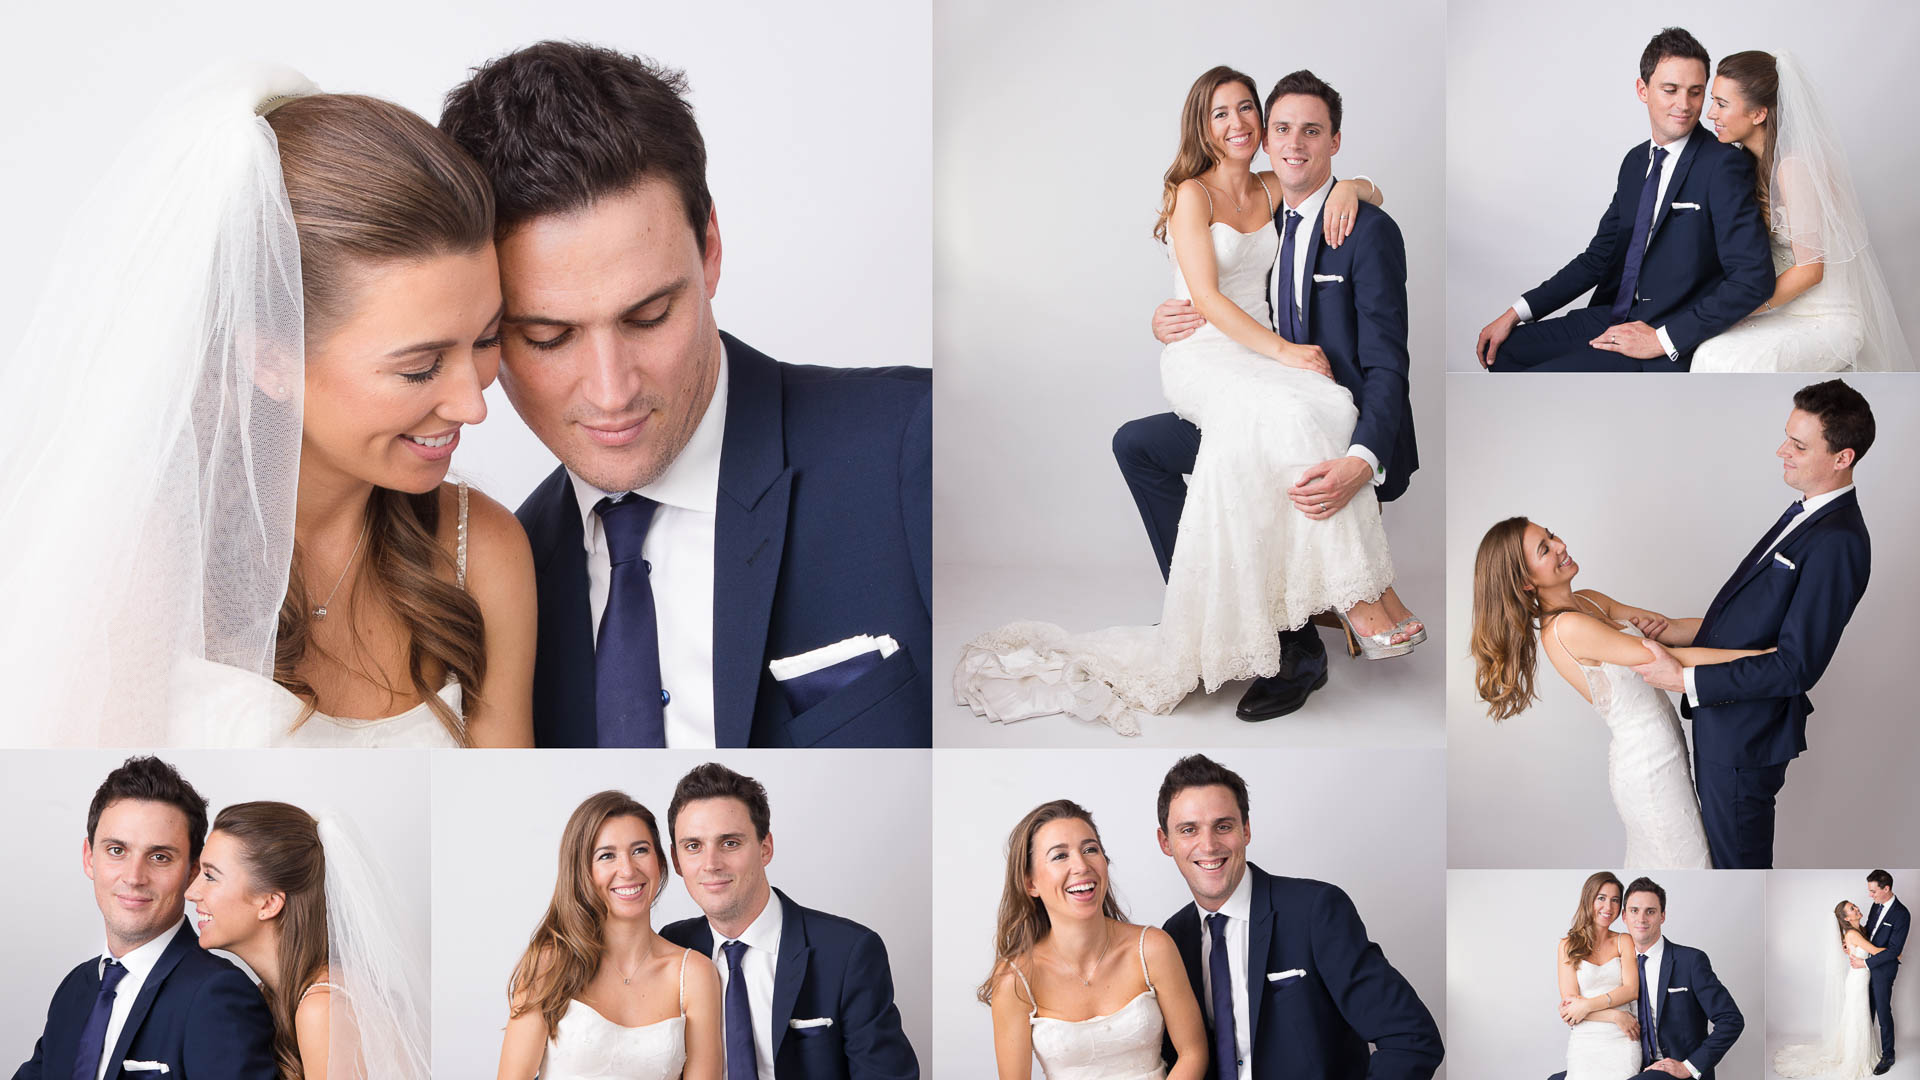 couple photography, couple portraits, portrait photography, wedding portraits